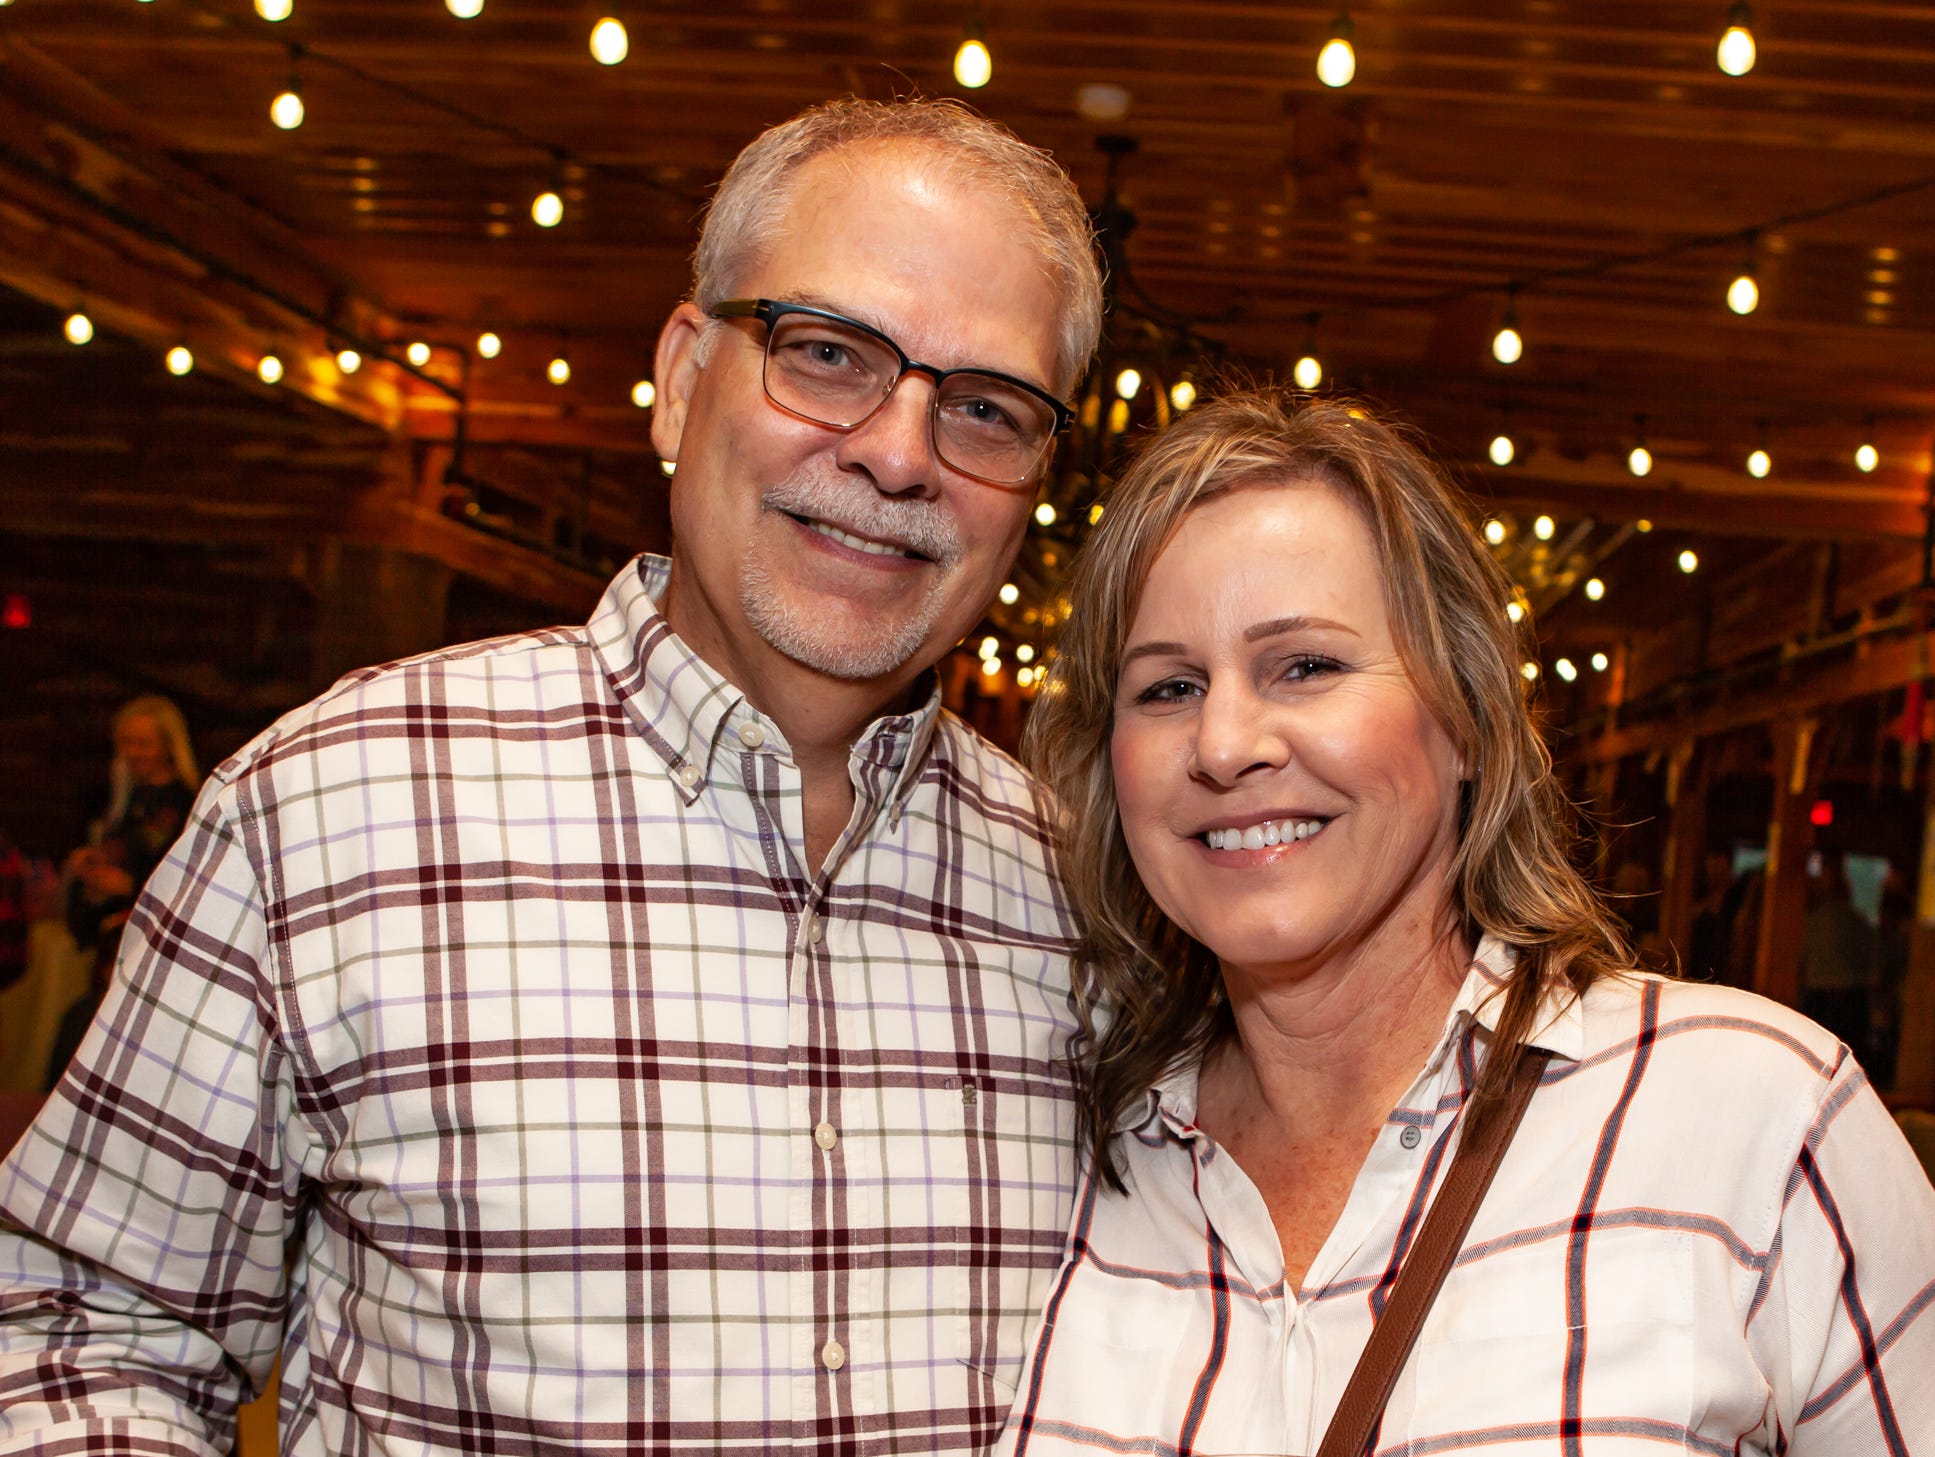 Boots and Brews: David and Reine Mathis